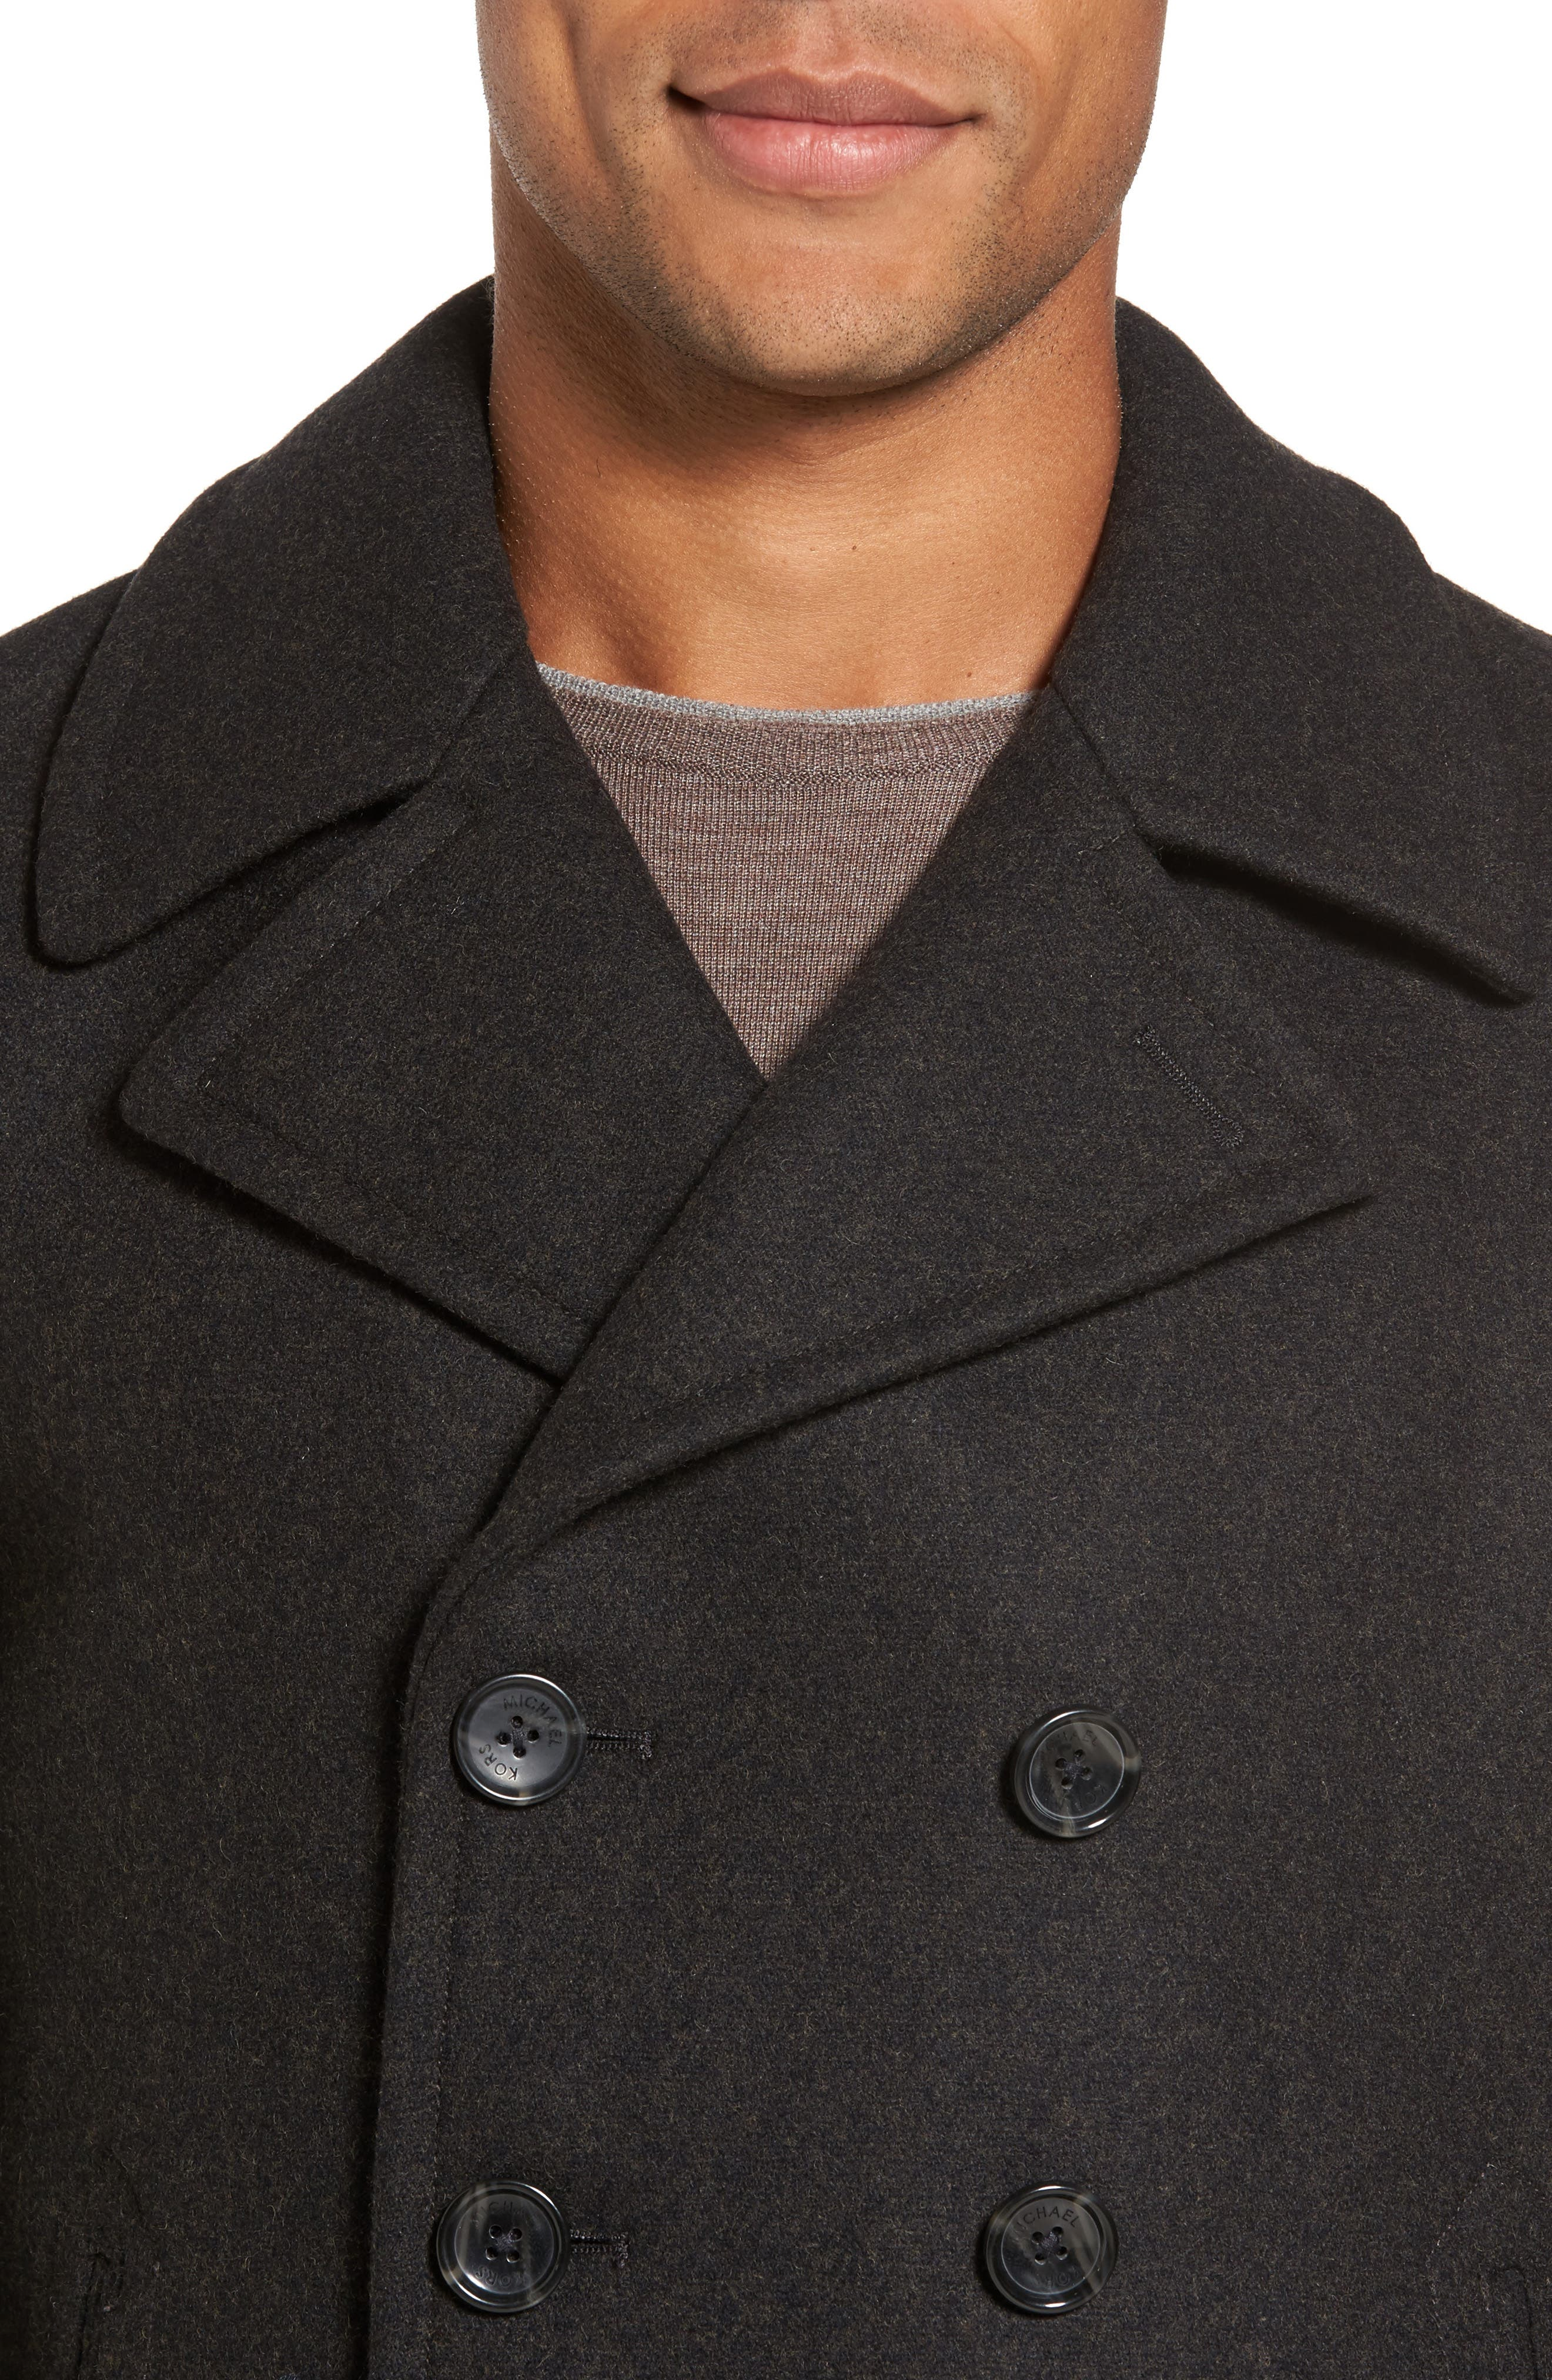 Wool Blend Peacoat,                             Alternate thumbnail 4, color,                             Loden Heather